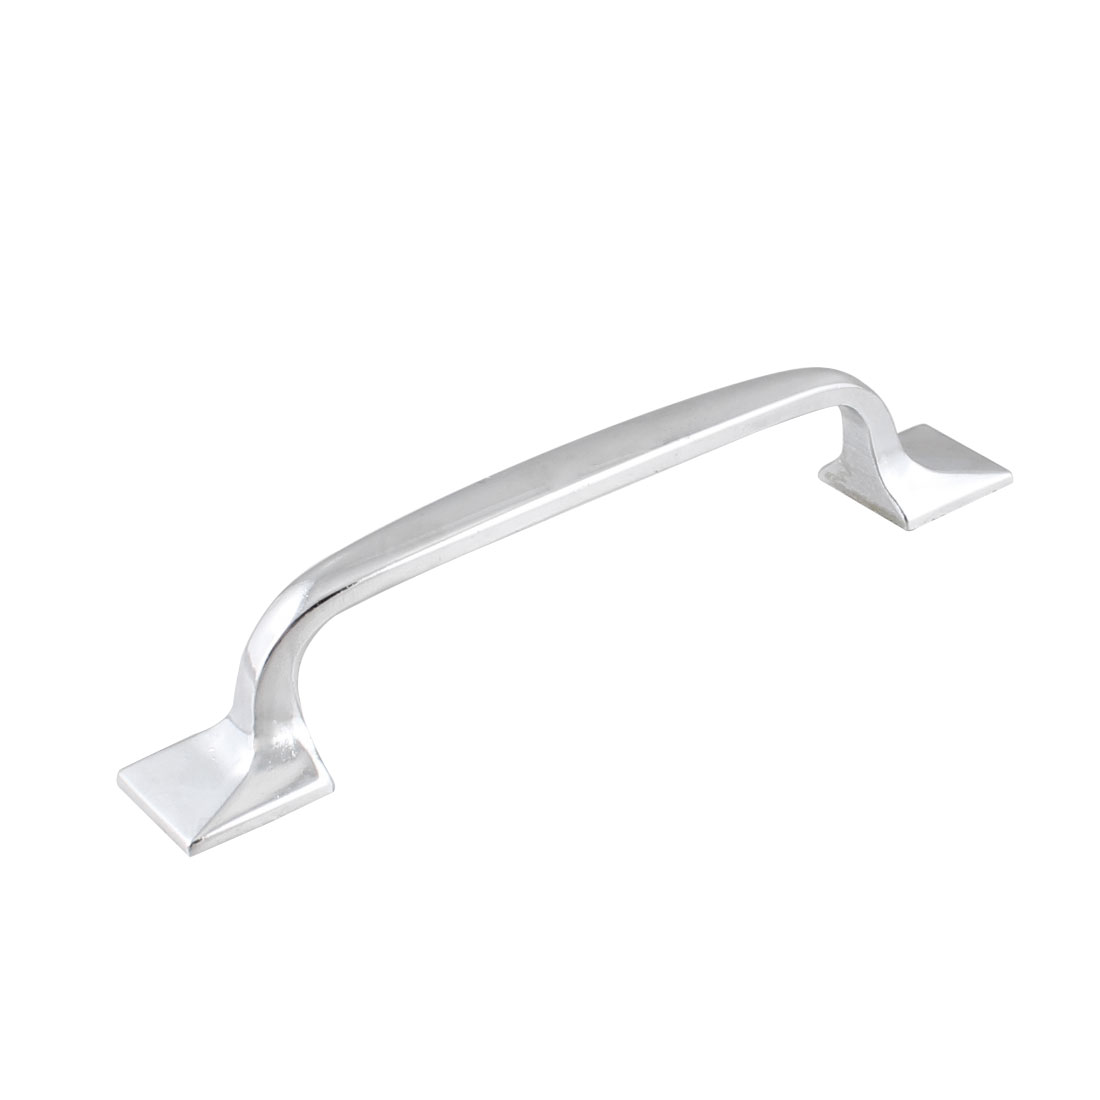 "Arch Shaped 5"" Long Stainless Steel Cupboard Cabinet Door Pull Handle"